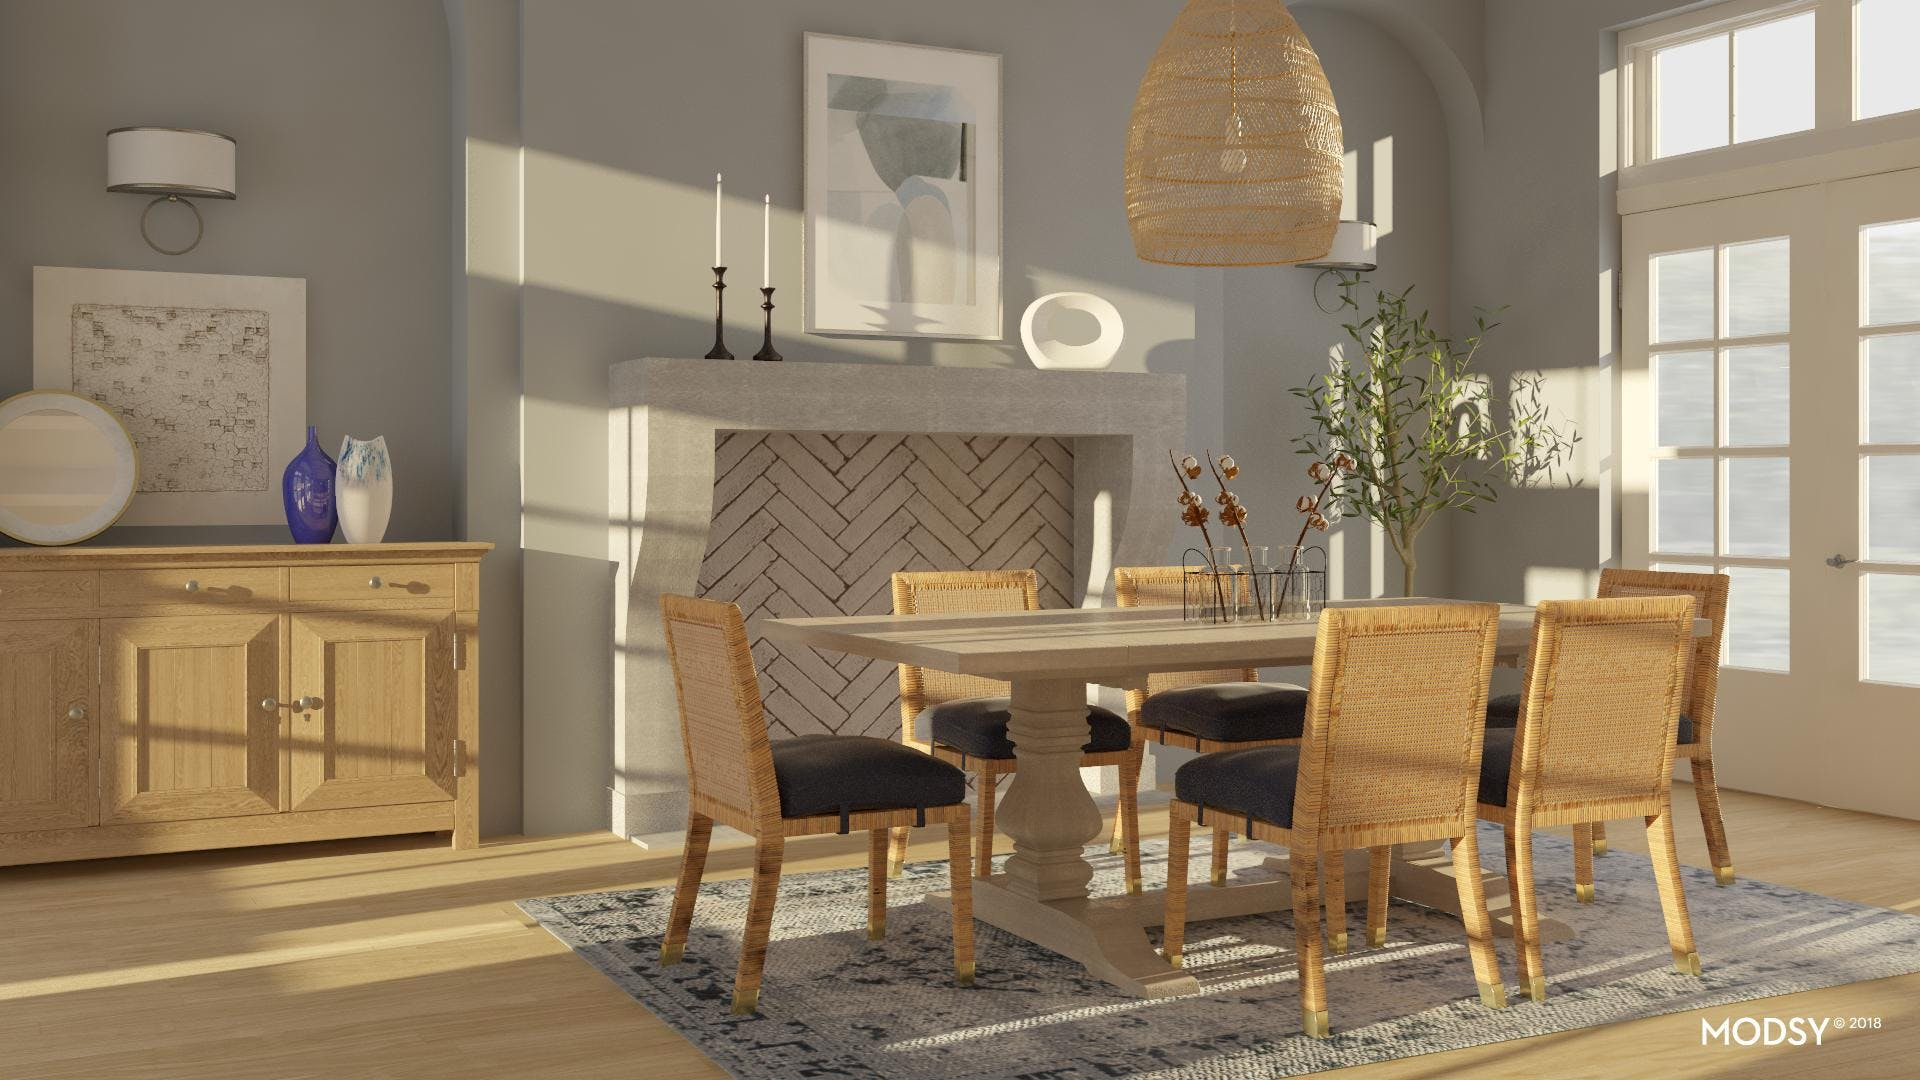 The Classic Naturalist's Dining Room